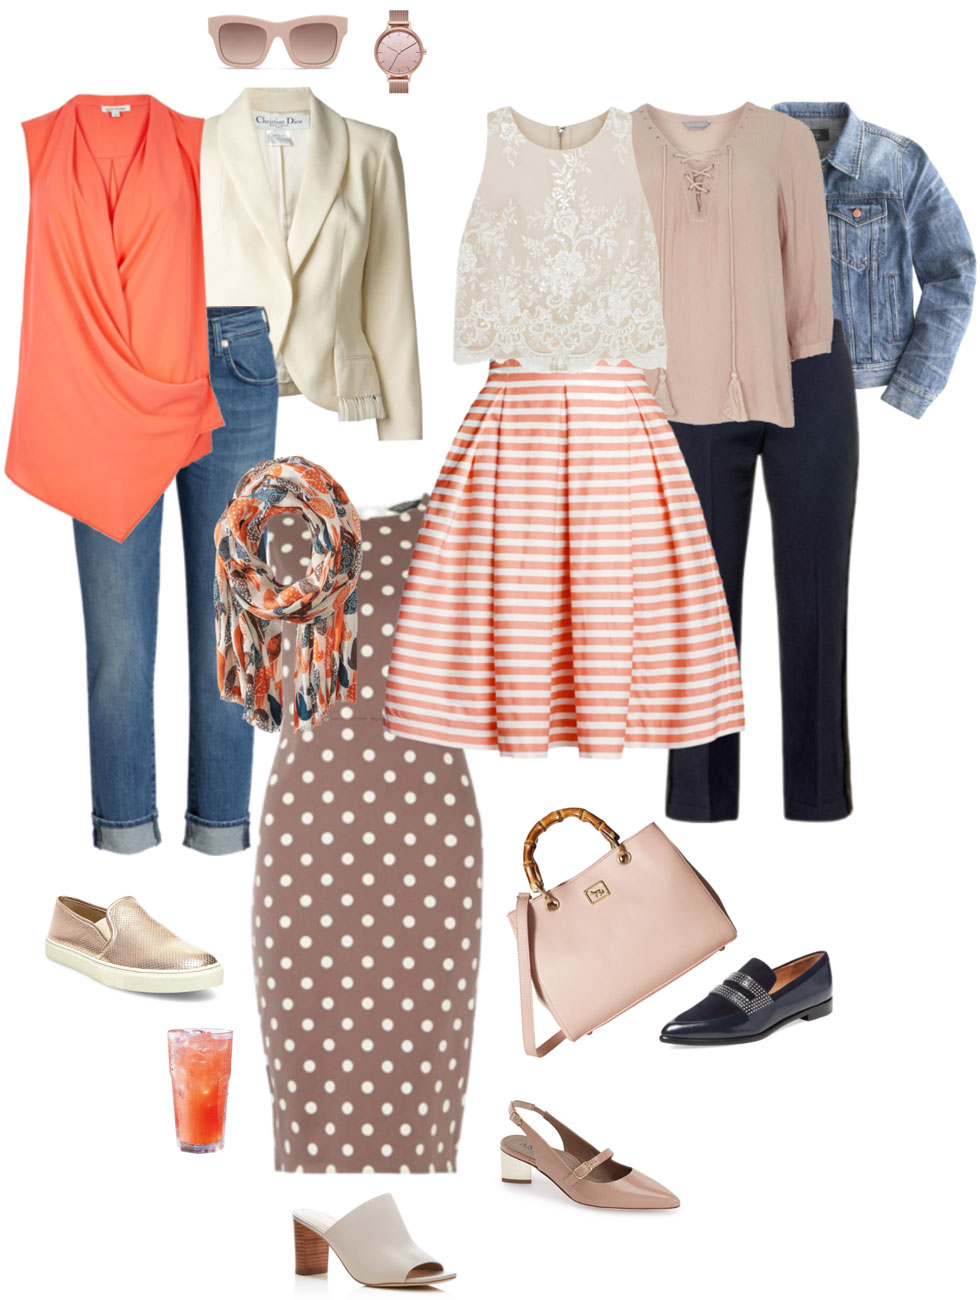 Coral, Blush, Cream, Taupe & Ink Blue